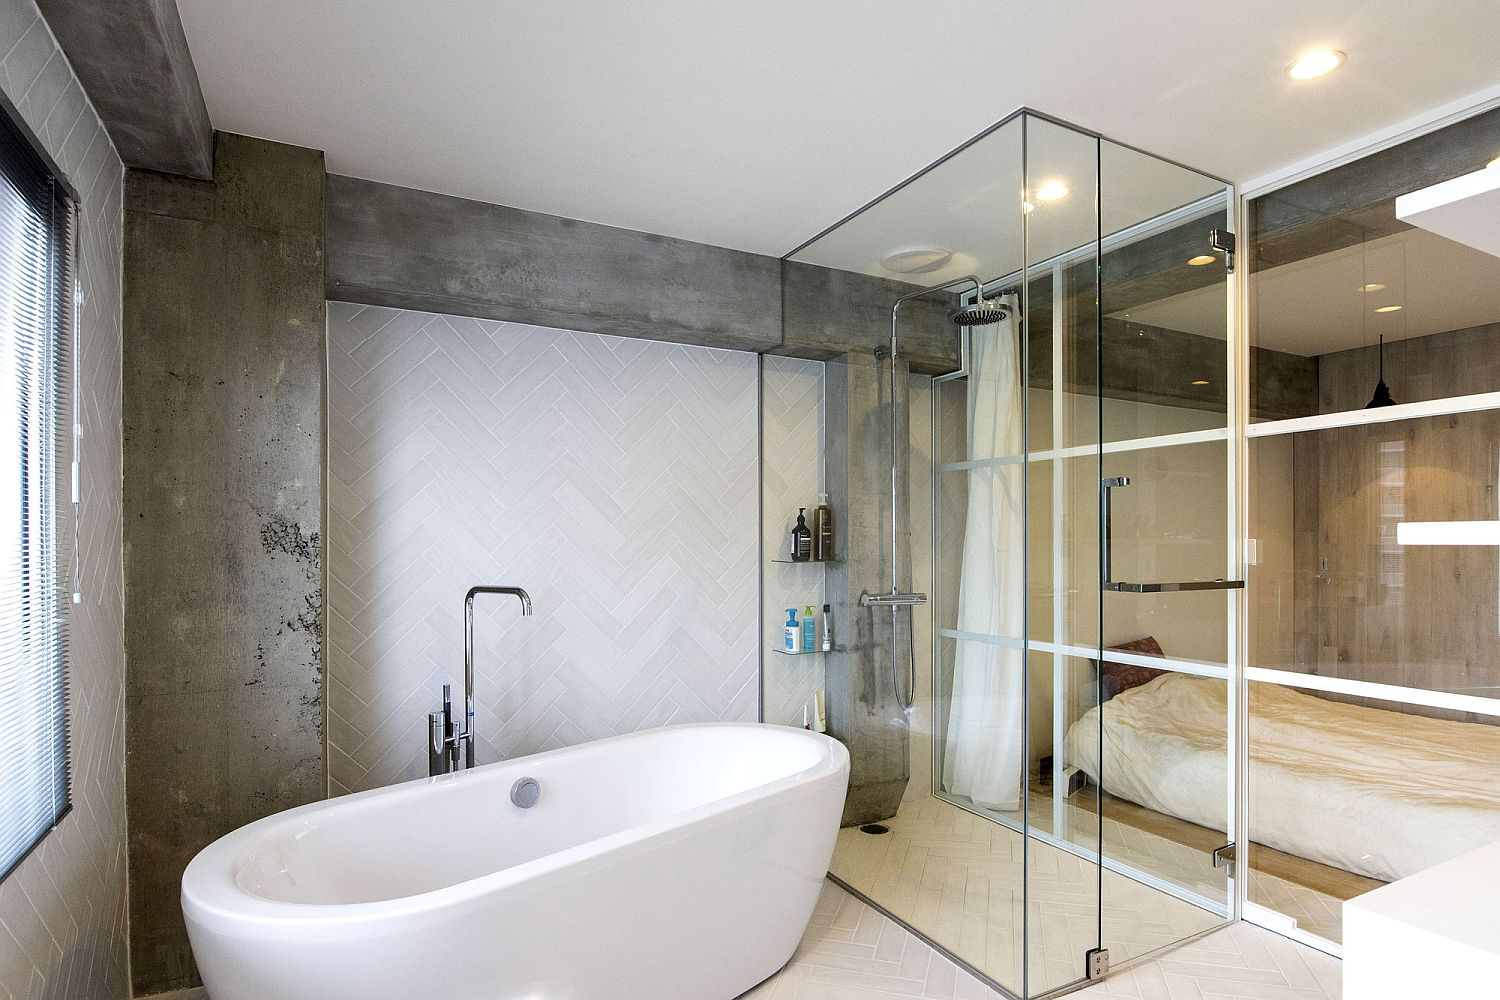 Exposed-concrete-finishes-combined-with-herringbone-pattern-backsplash-and-glass-shower-cube